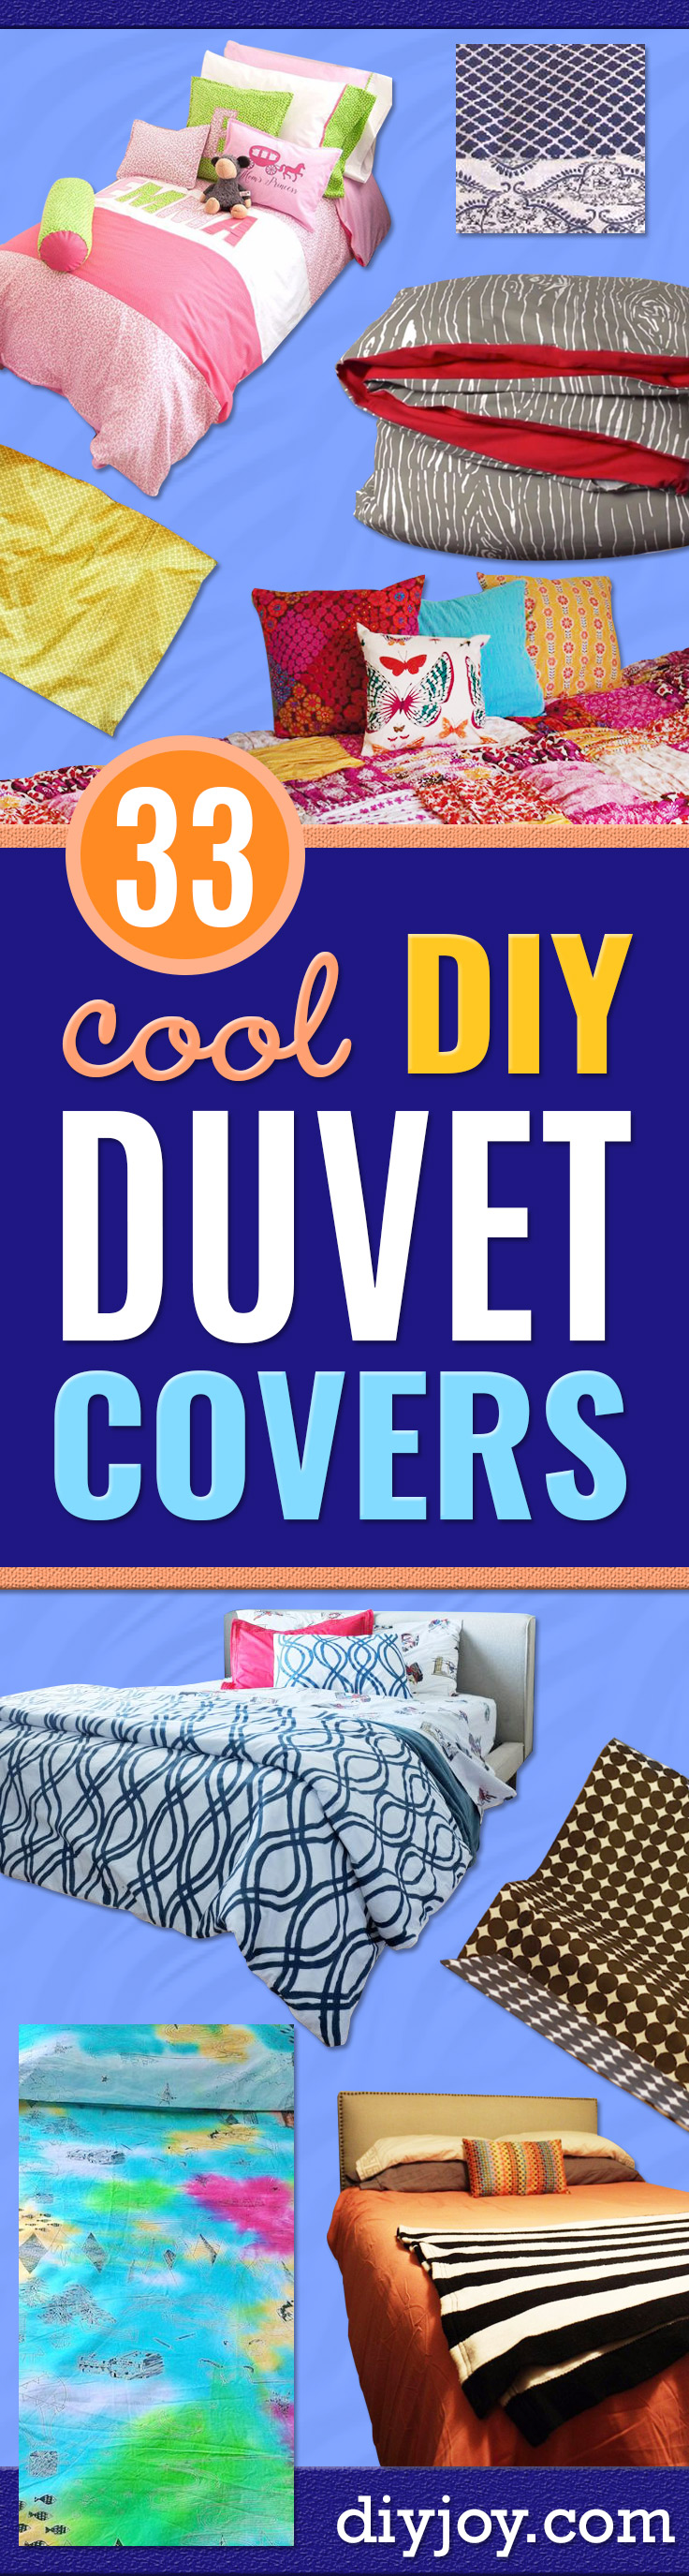 DIY Duvet Covers - Easy Sewing Projects and No Sew Ideas for Duvets - Cheap Bedroom Decor Ideas on A Budget - How To Sew A Duvet Cover and Bedding Tutorial - Creative Covers for Bed - Quick Projects for Making Designer Duvets - Awesome Home Decor Ideas and Crafts http://diyjoy.com/diy-duvet-covers